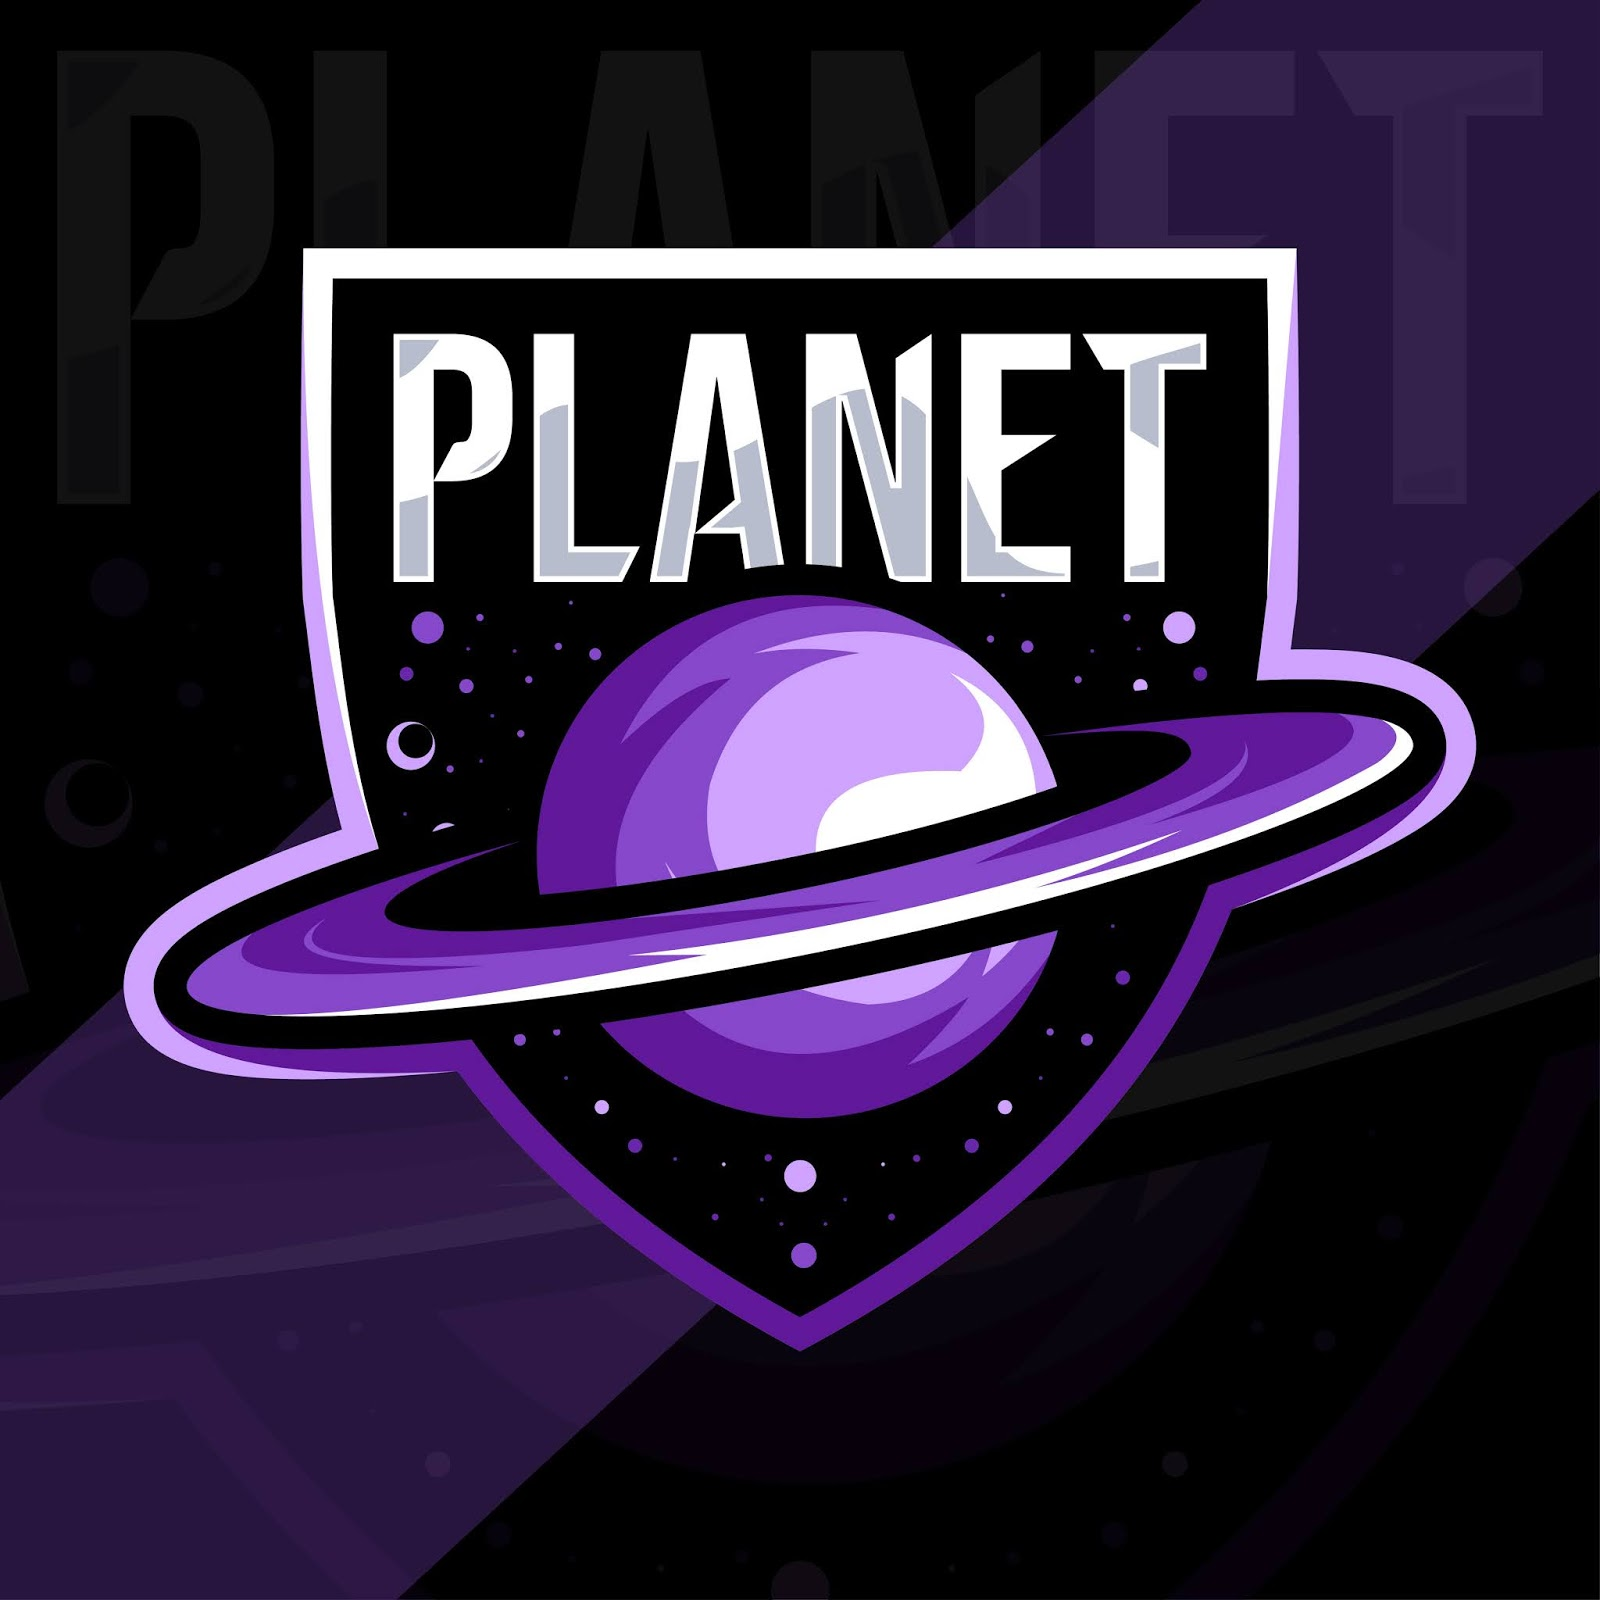 Planet Mascot Logo Esport Template Free Download Vector CDR, AI, EPS and PNG Formats